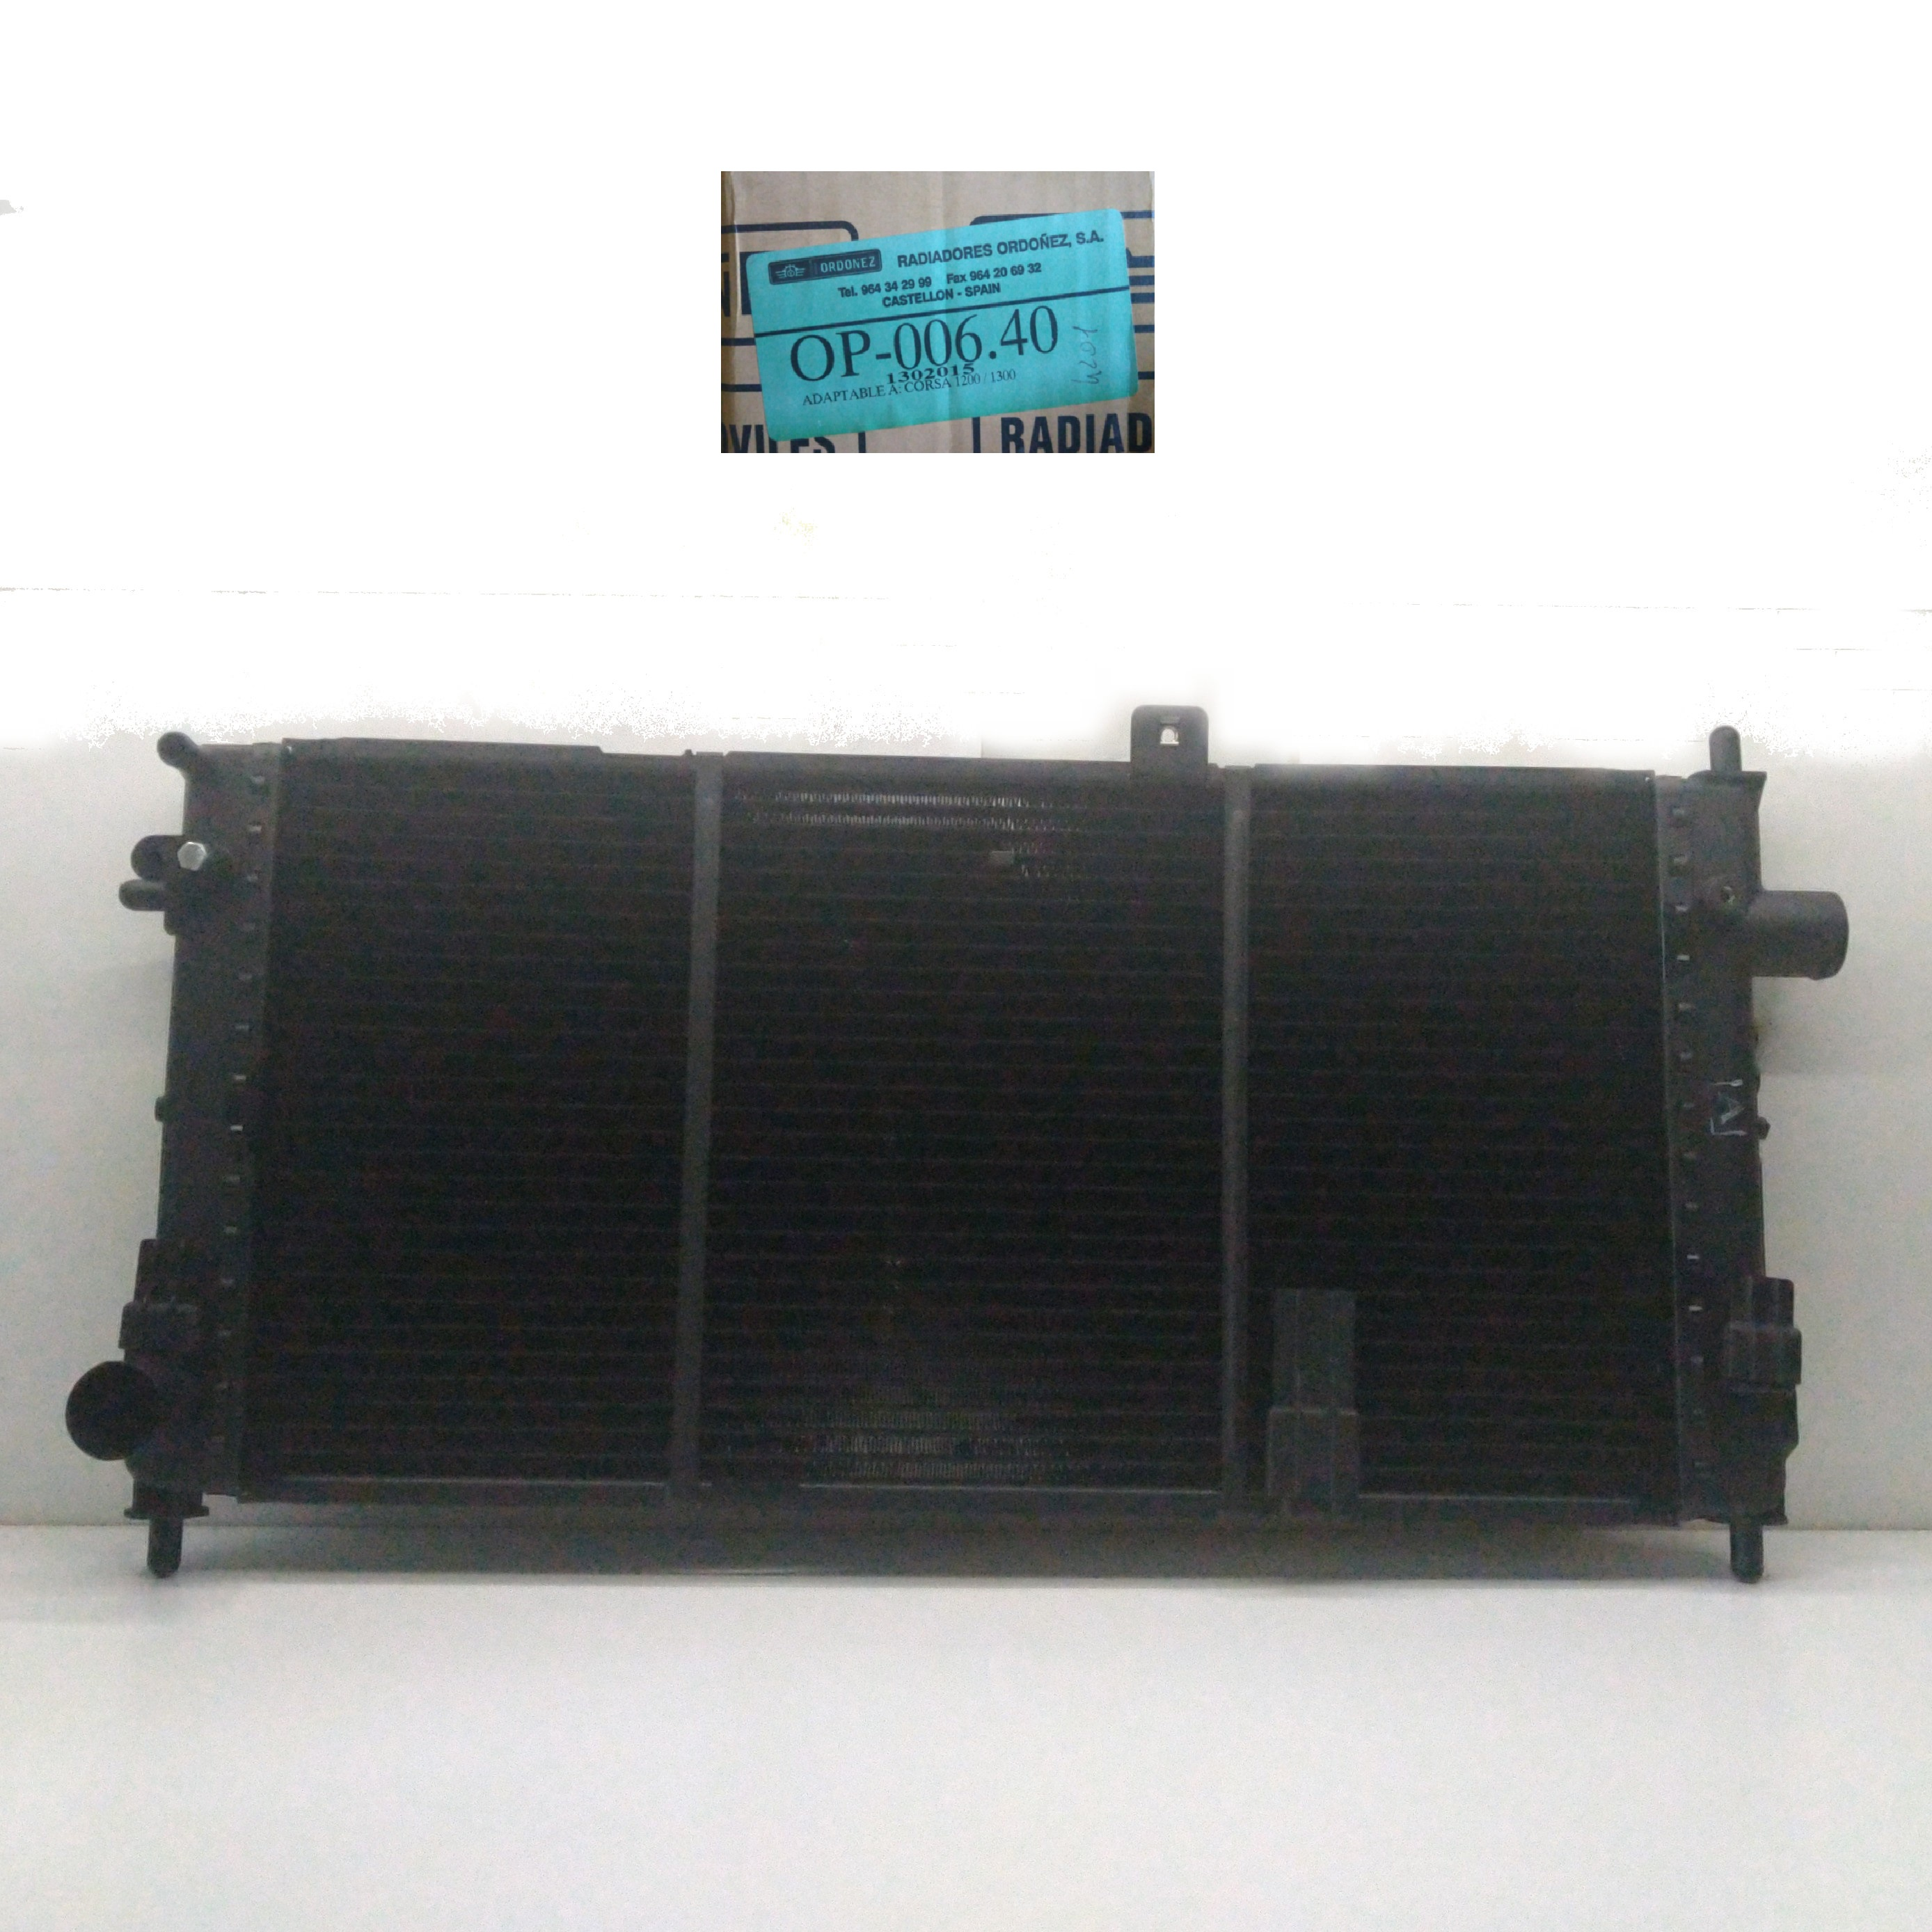 ENGINE COOLING RADIATOR OPEL CORSA ORDONEZ FOR 1302015